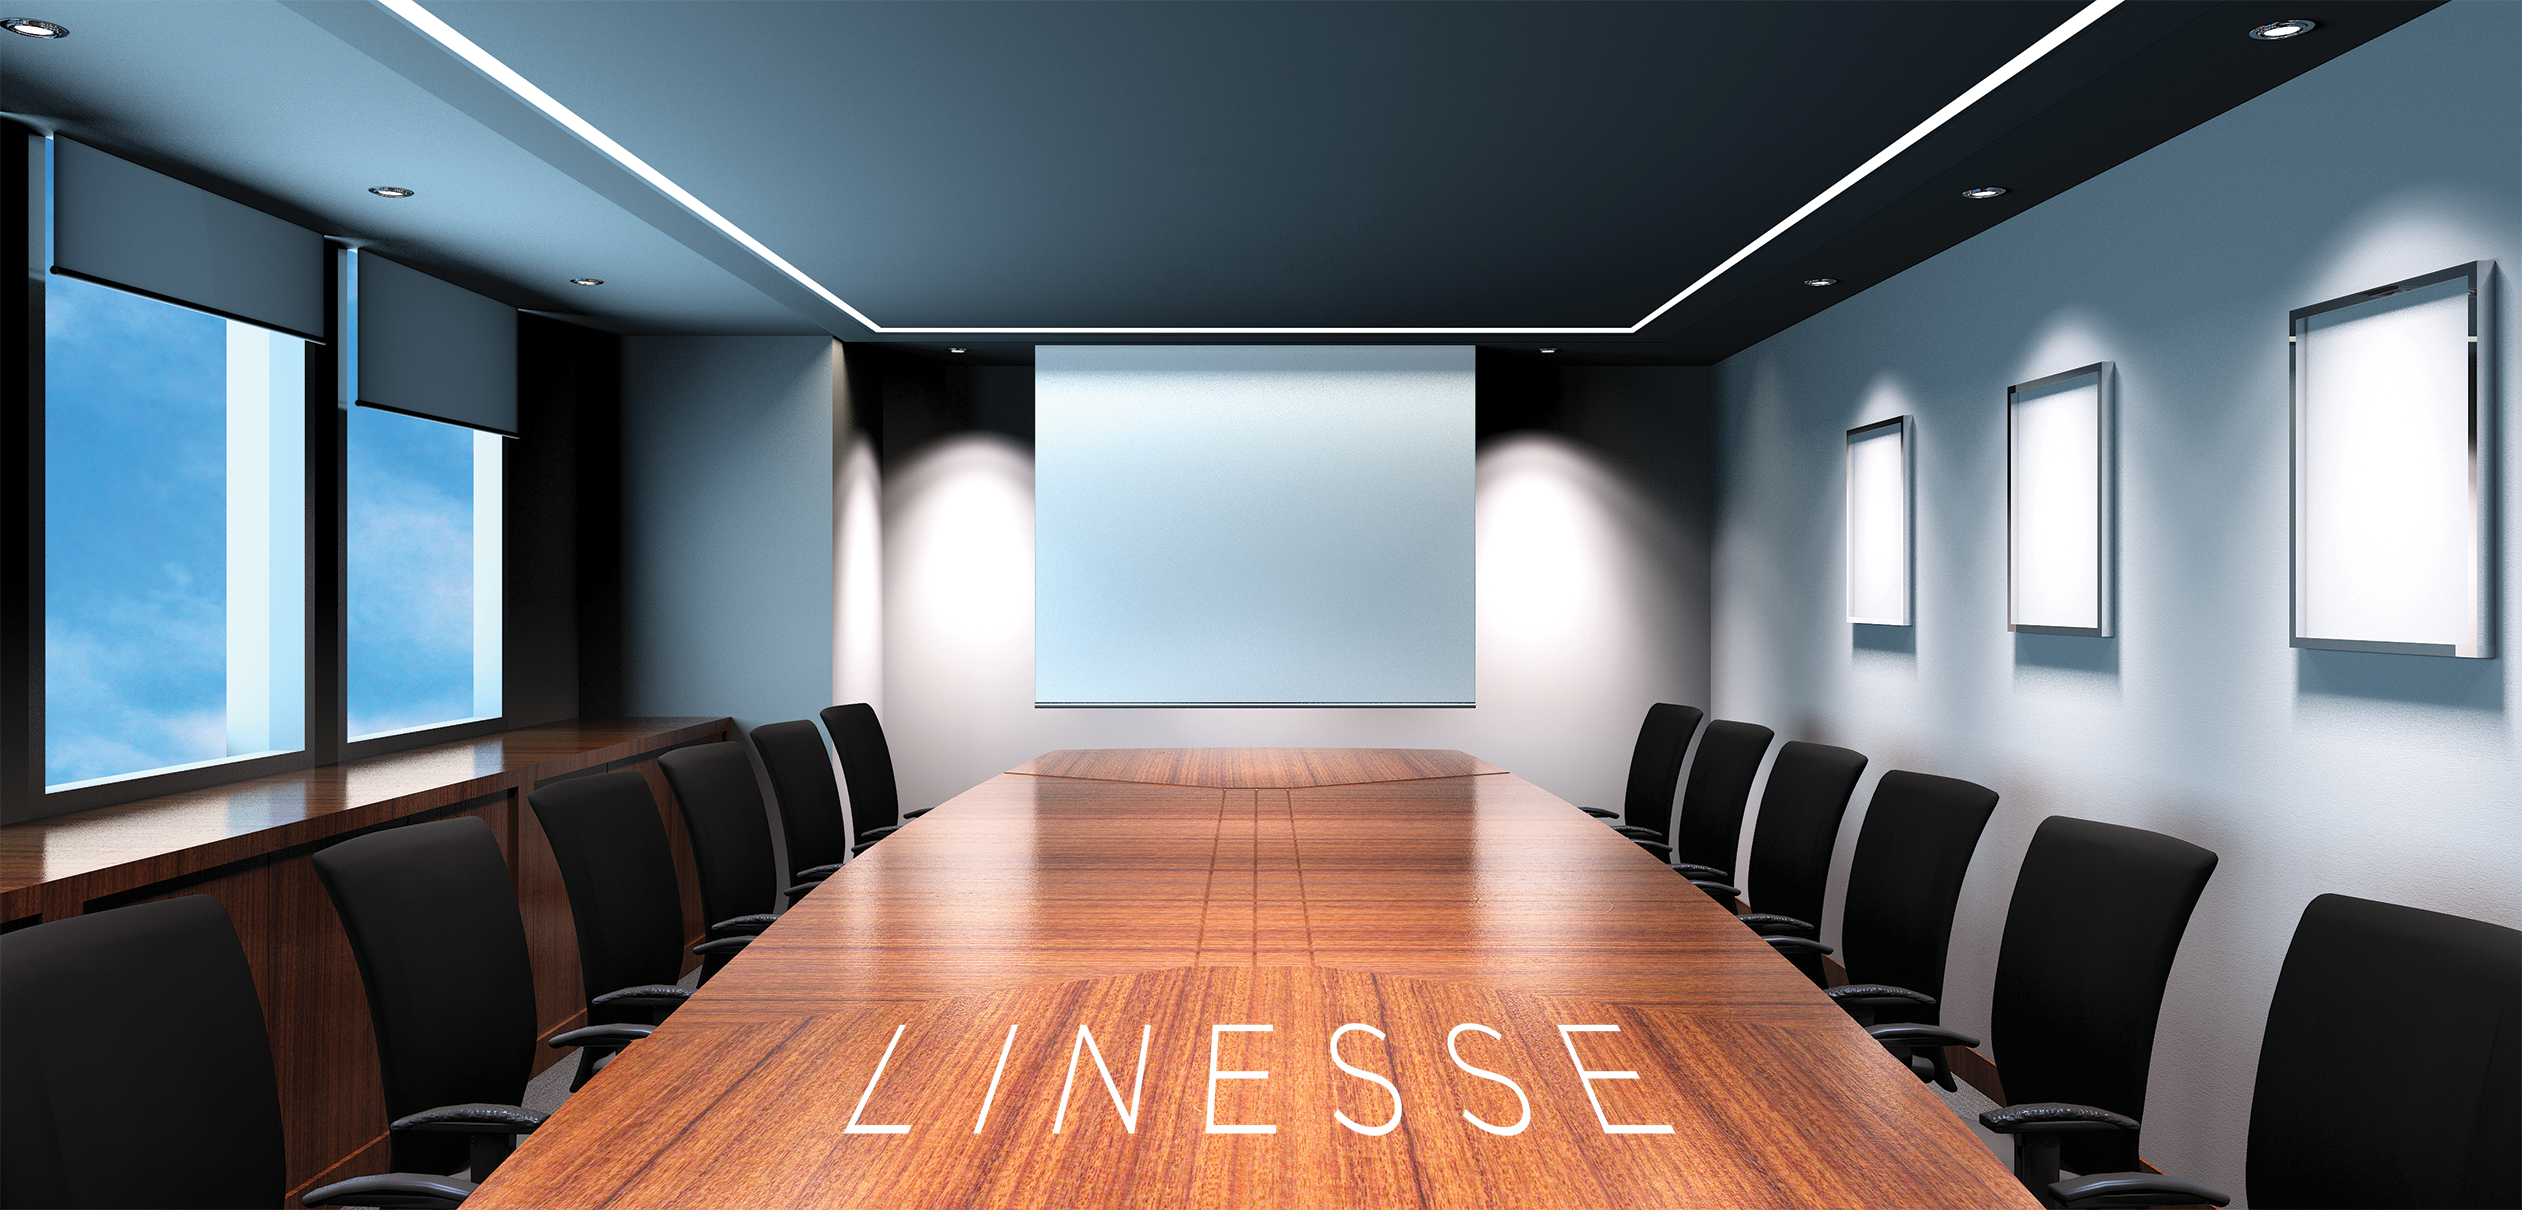 Linesse linear recessed luminaires disinfecting a conference room